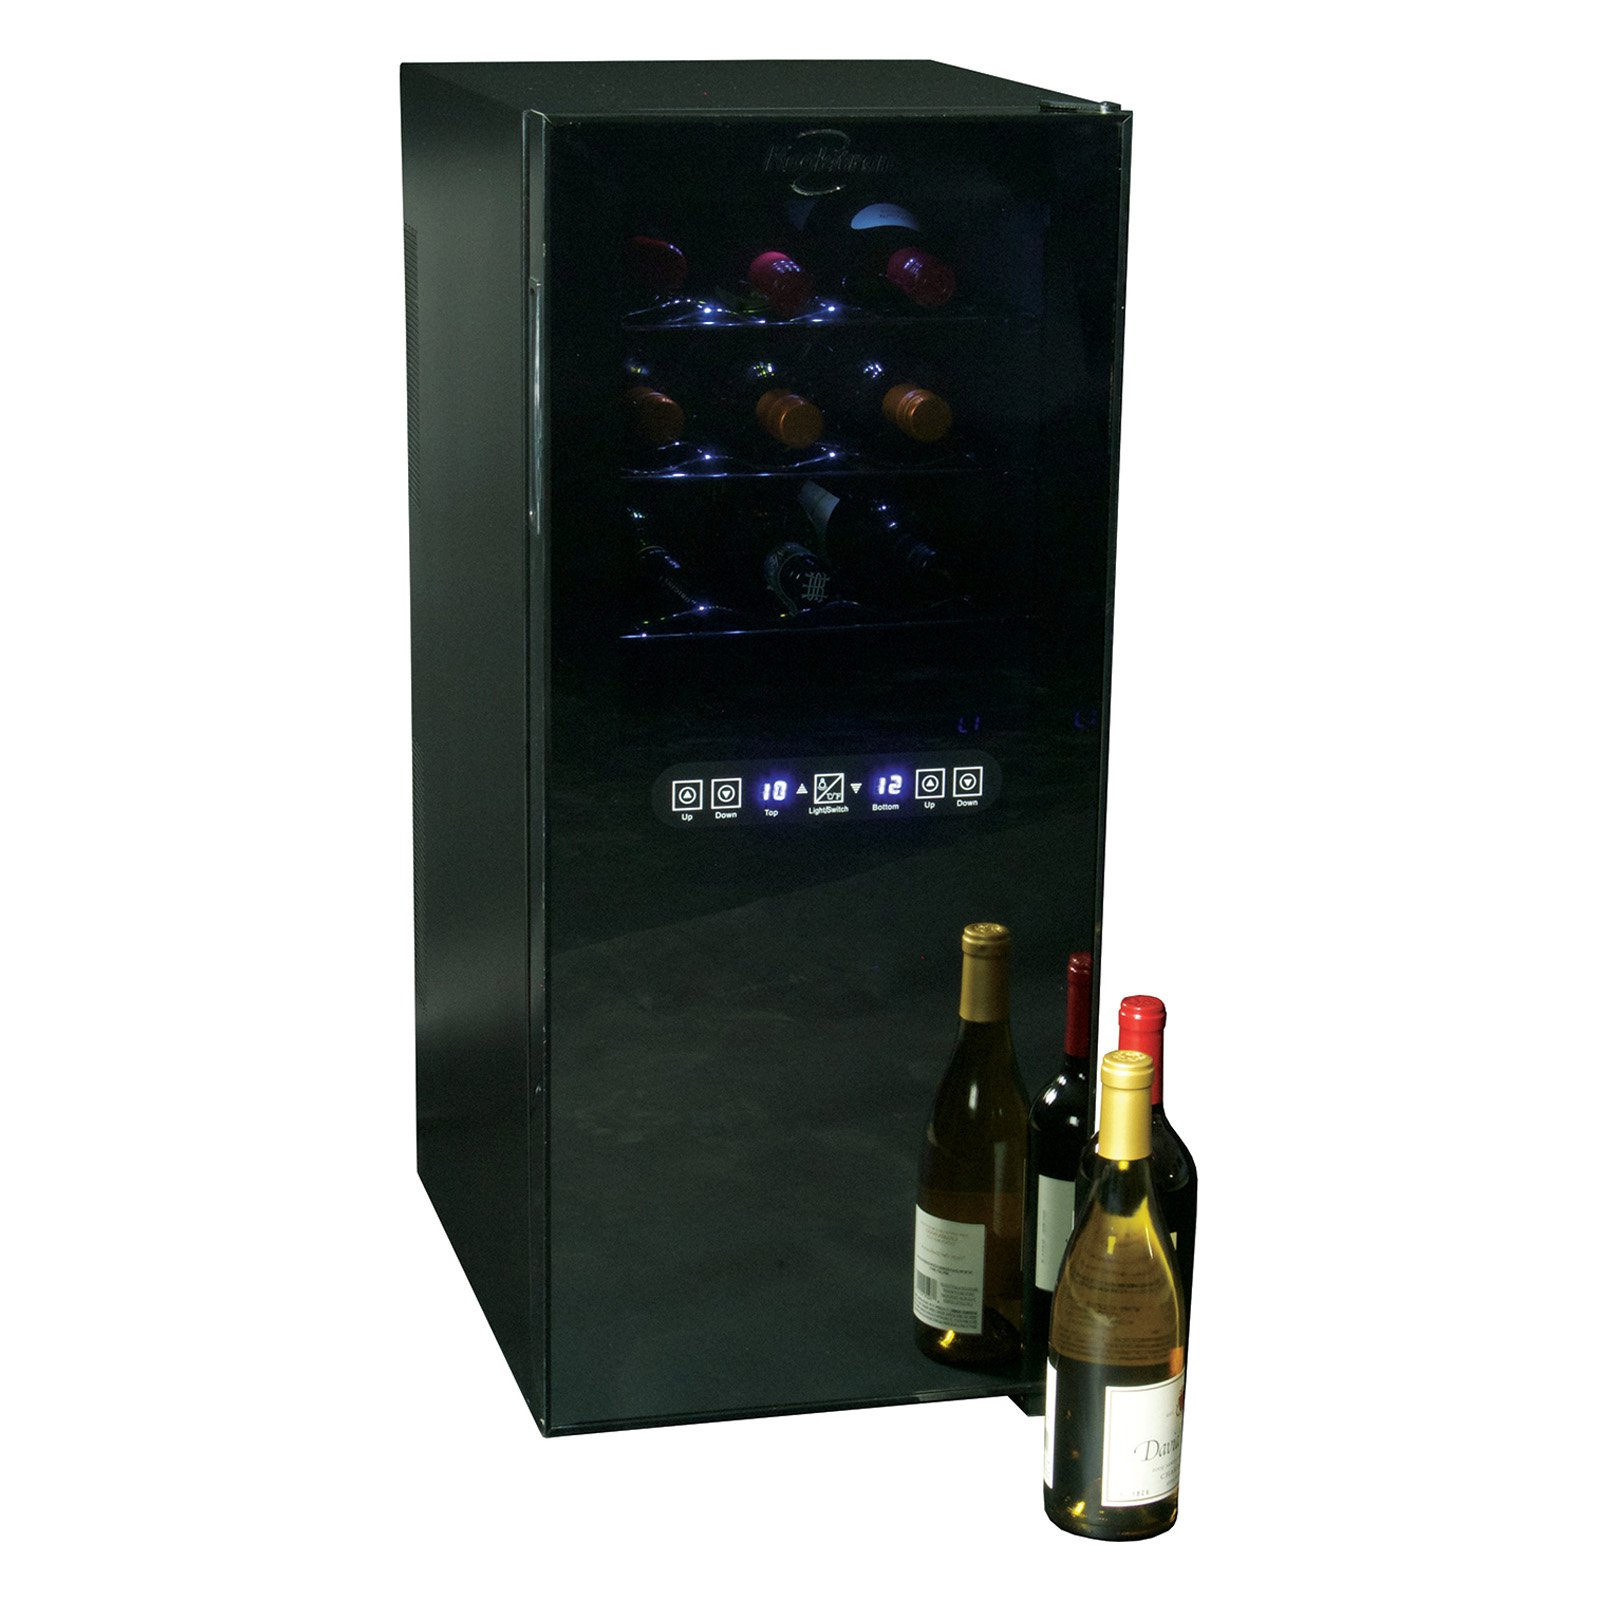 Koolatron WC24MG 24-Bottle Dual-Zone Wine Cooler